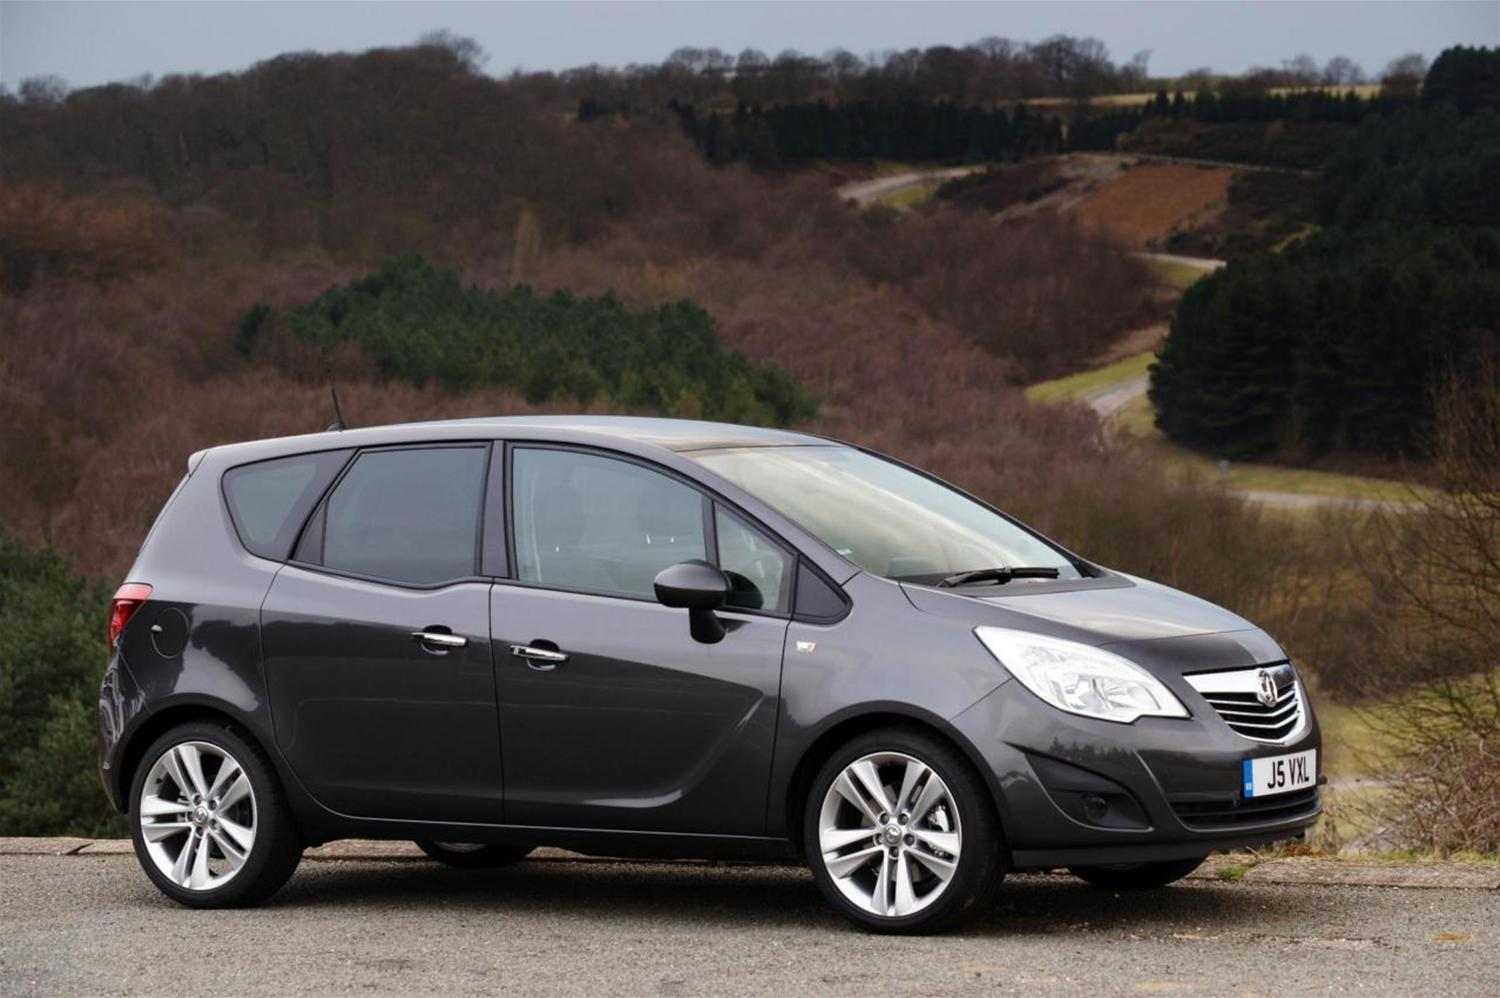 The New Vauxhall Meriva Spotted During Testing